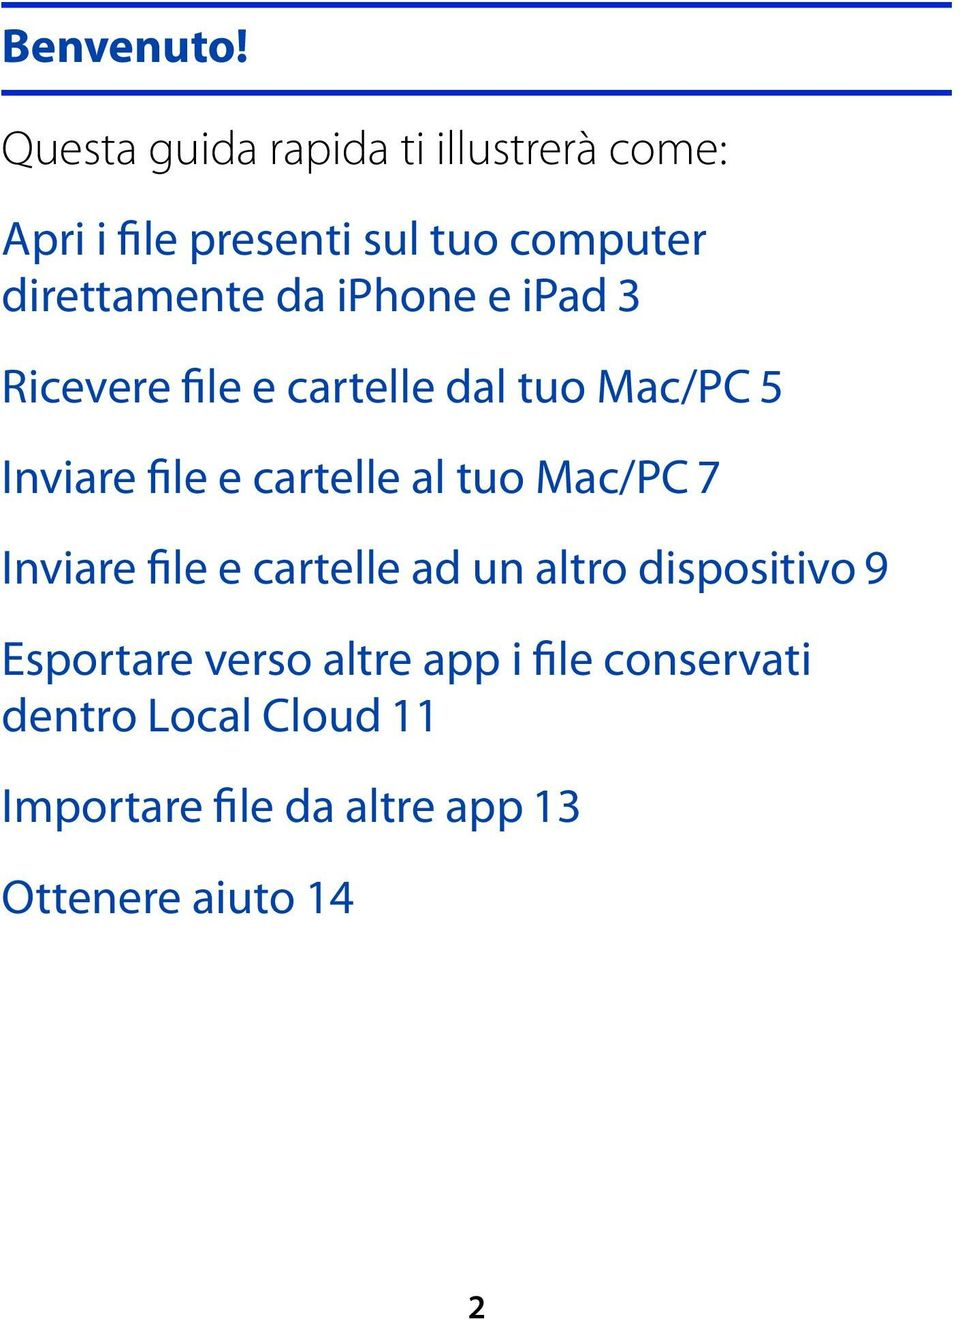 da iphone e ipad 3 Ricevere file e cartelle dal tuo Mac/PC 5 Inviare file e cartelle al tuo